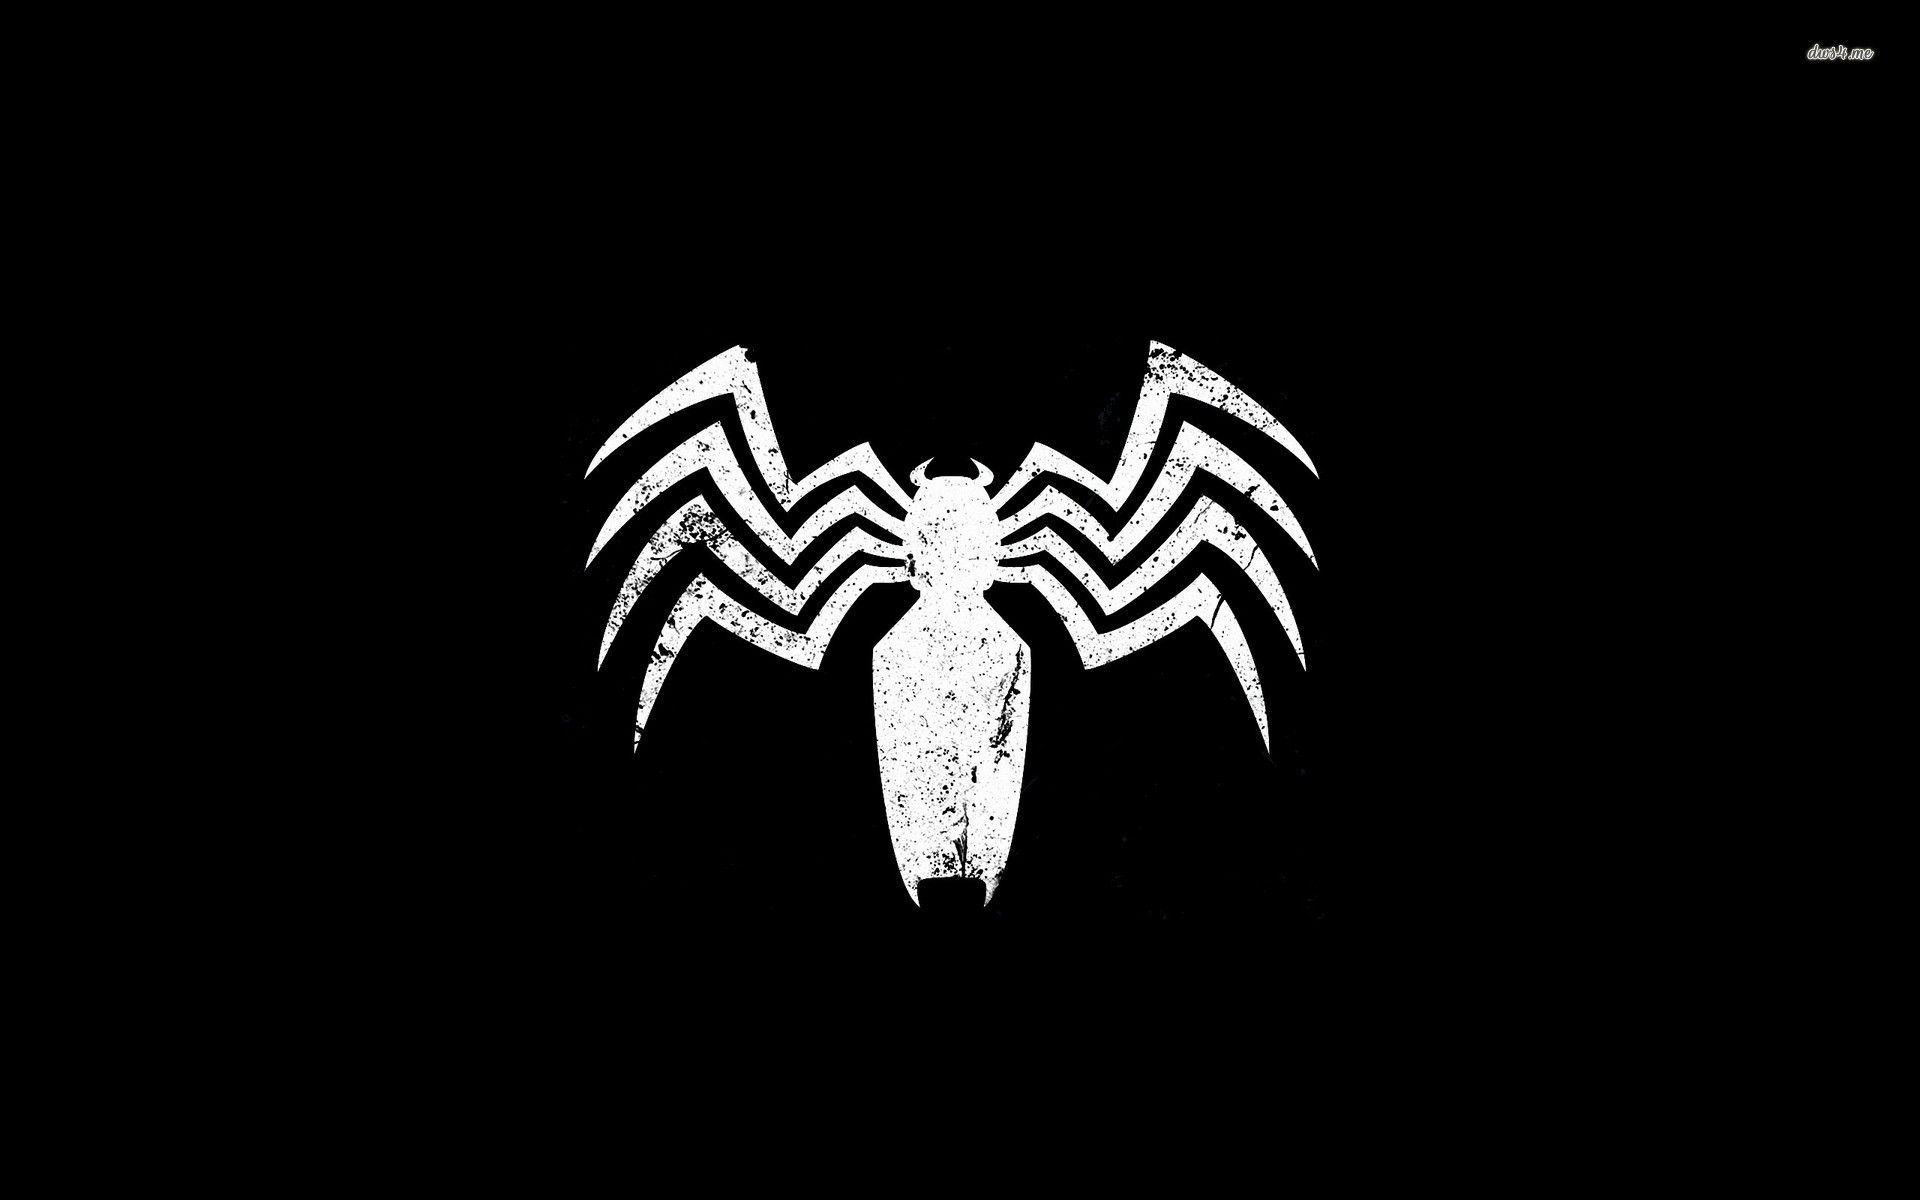 1920x1200 Venom background